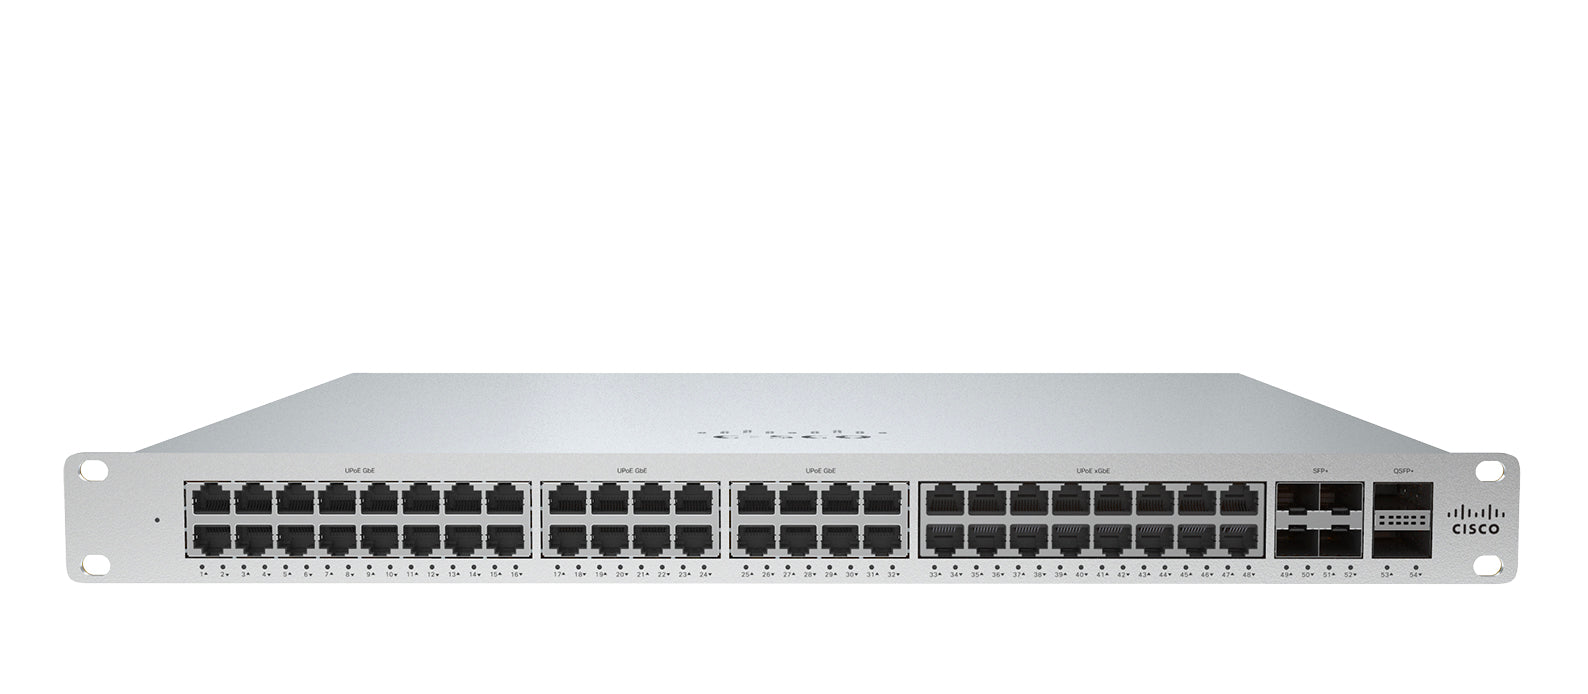 MS355-48X-HW Cisco Meraki MS335 Multi-Gigabit Access Switch (New)